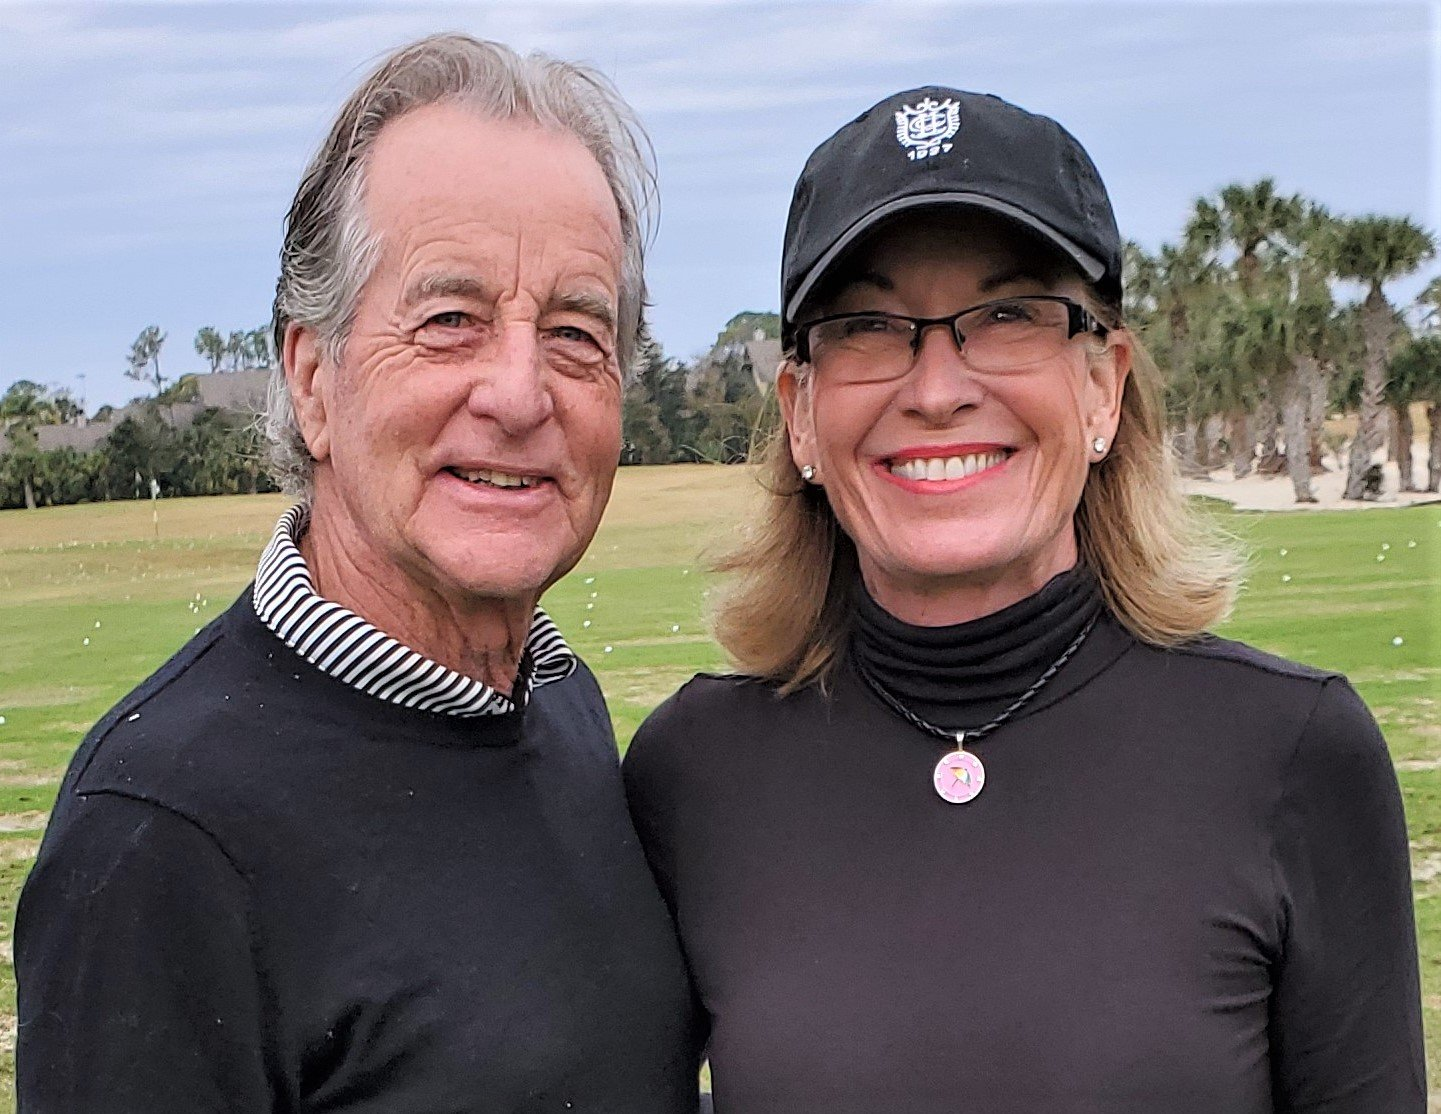 Bob and Melissa Gotfredson won the Couples Division at the JAGA Family Championship.